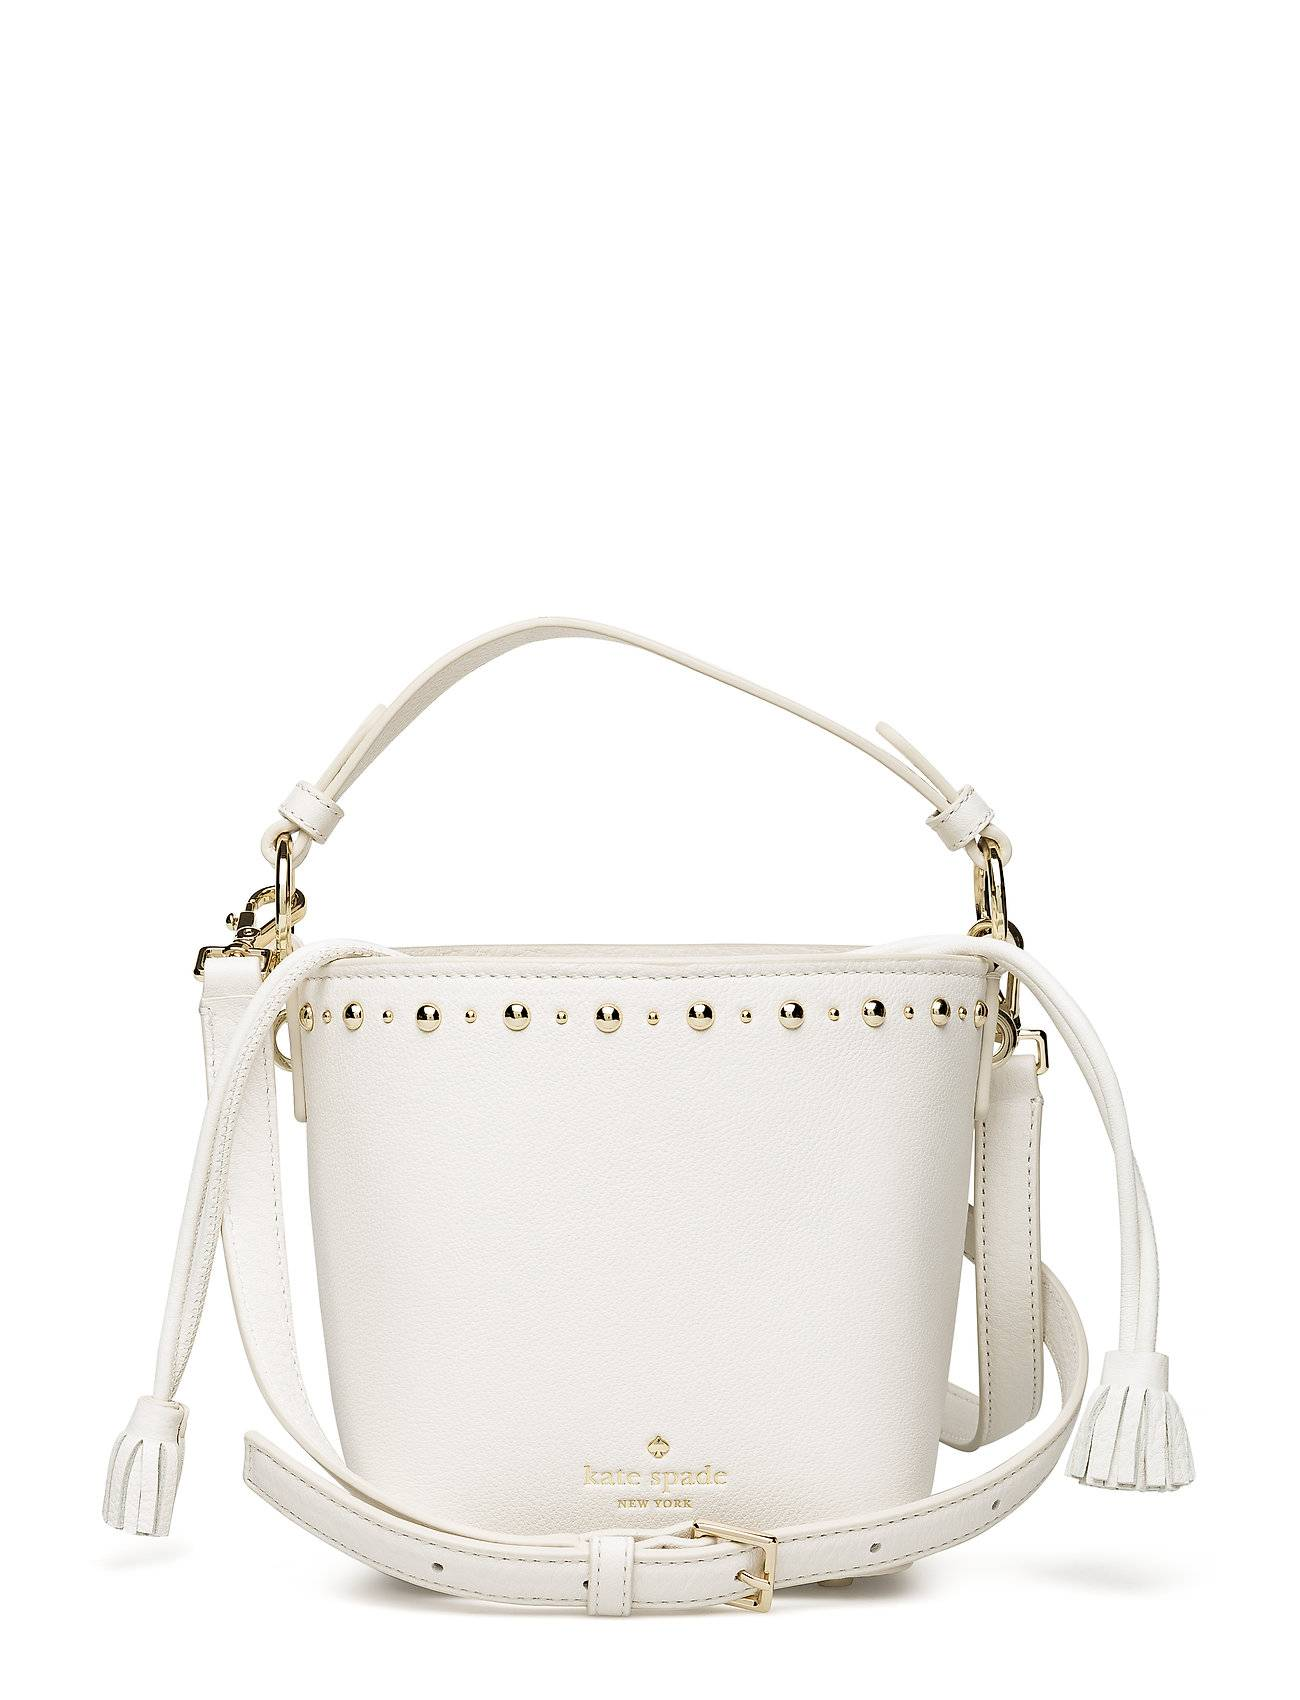 Kate Spade New York Hayes Street Studded Pippa